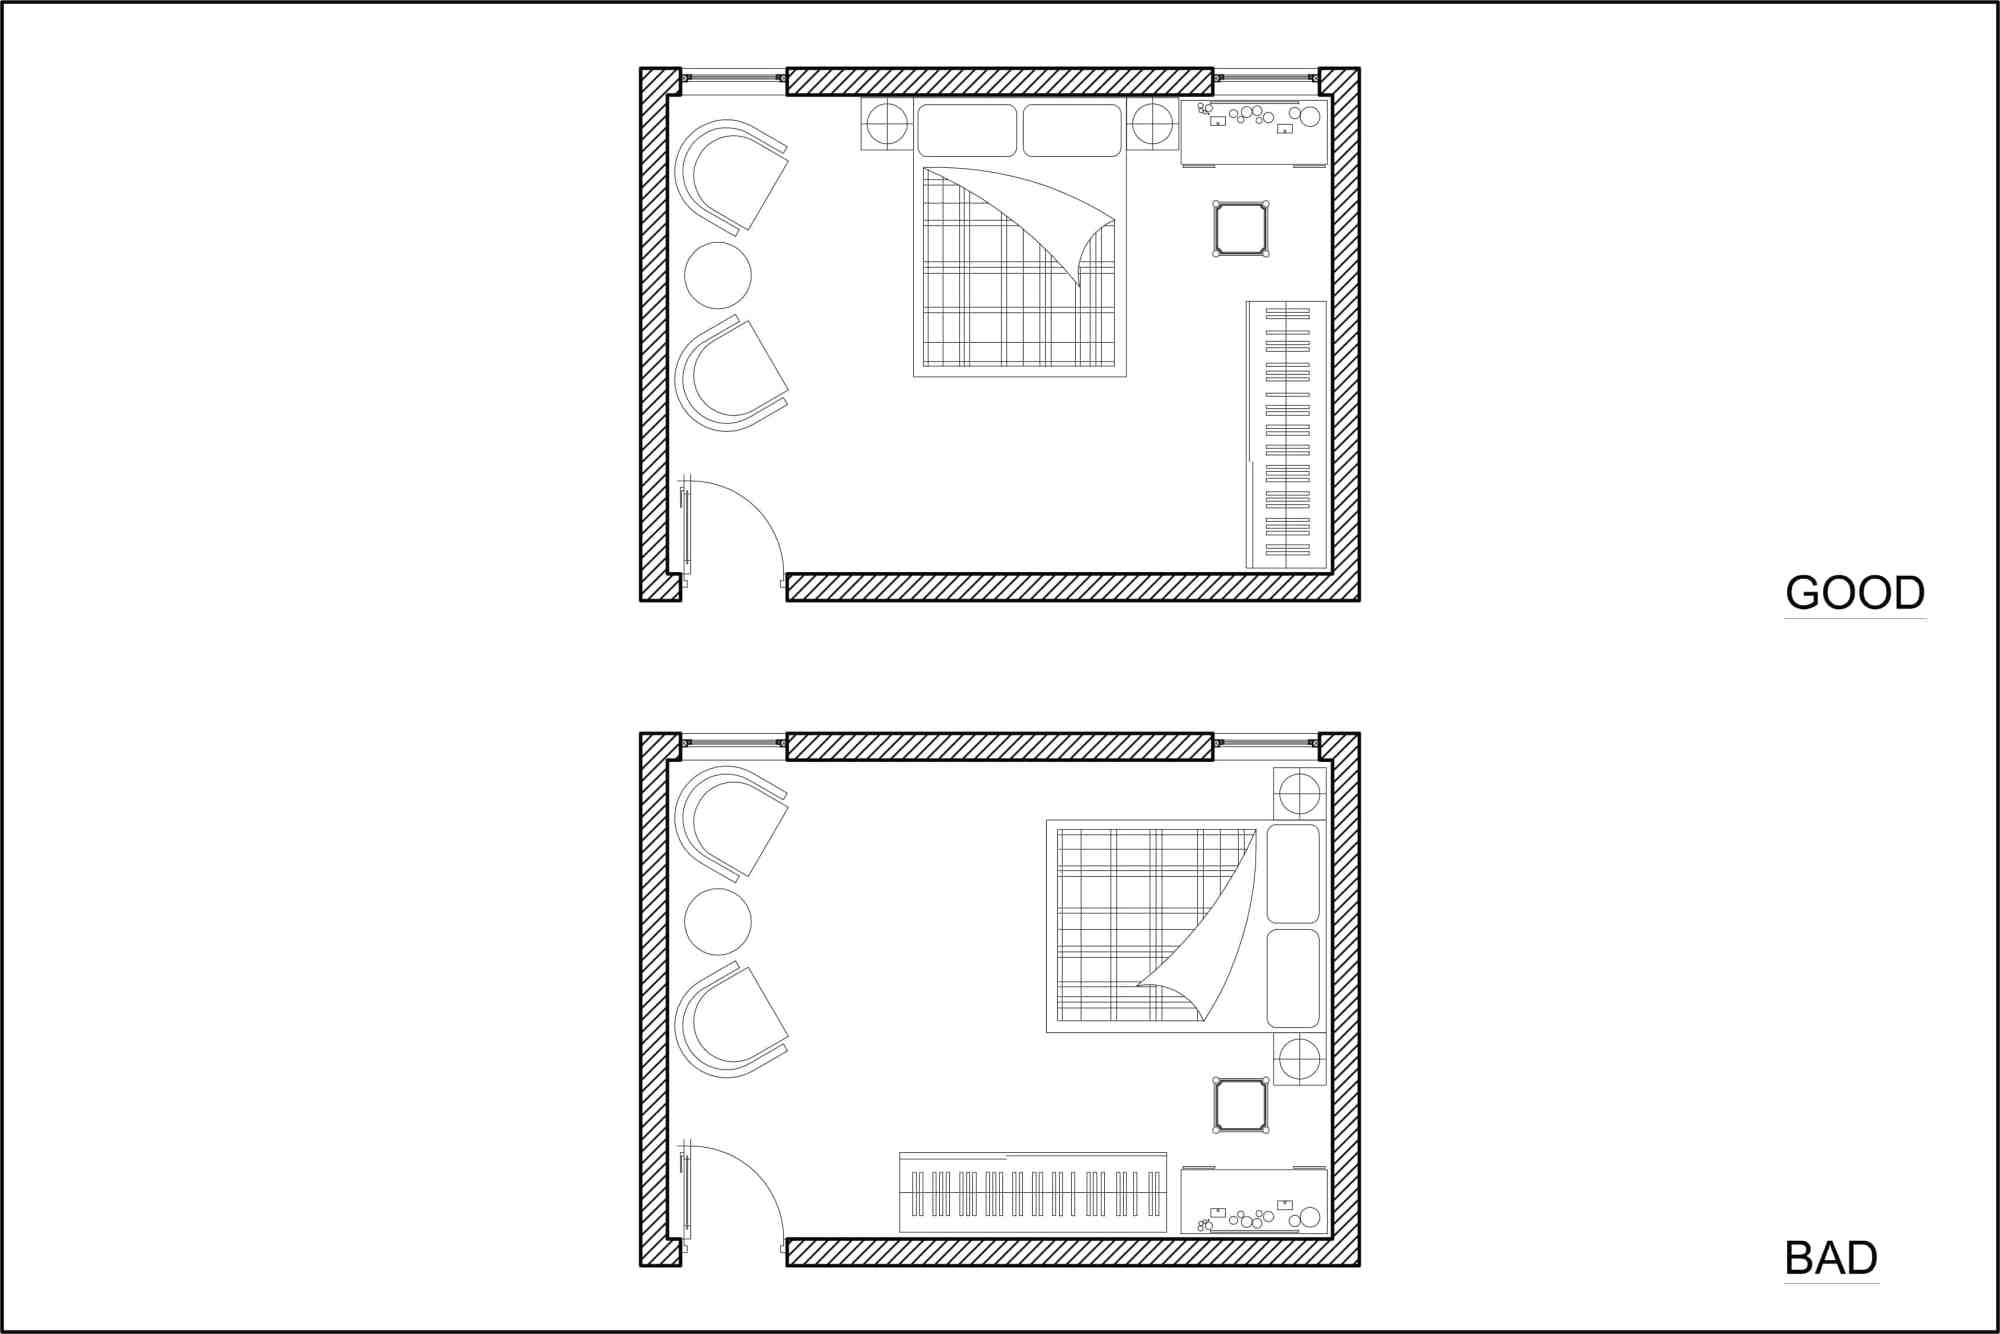 hight resolution of layout diagram for optimal feng shui bed location and orientation in bedroom diagram